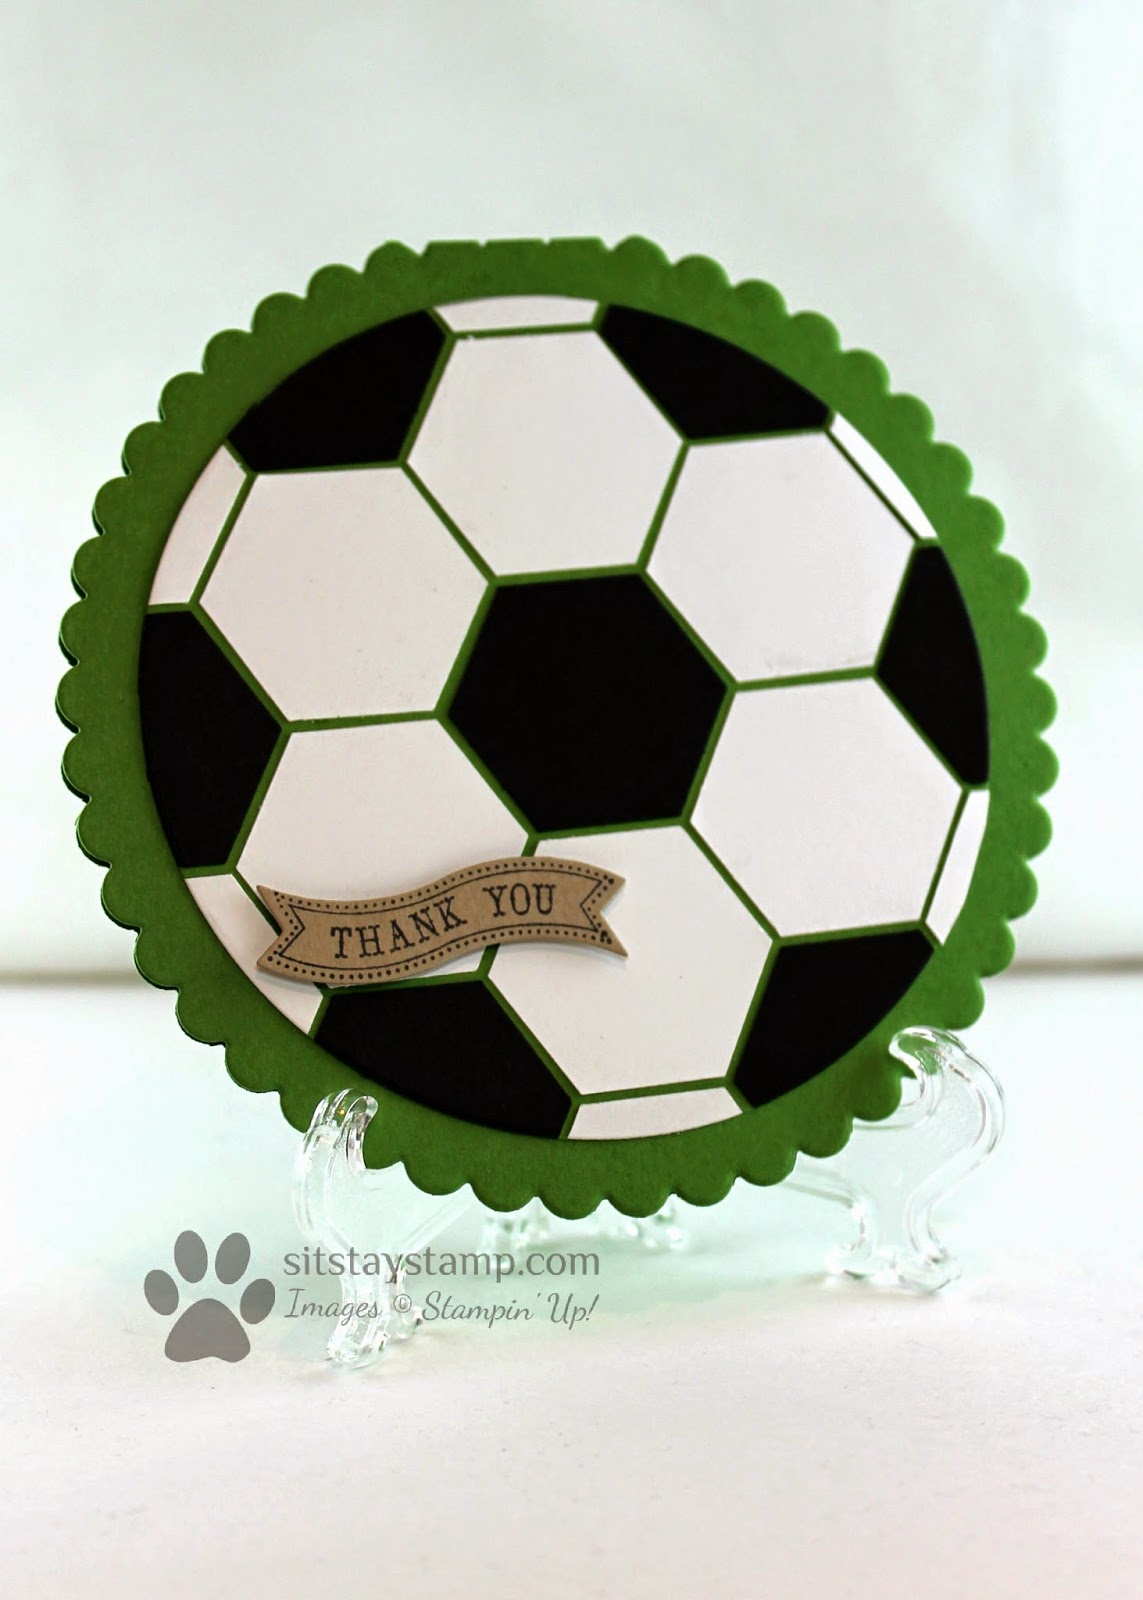 Soccer_ball_card_Stampin_Up_sitstaystamp.com